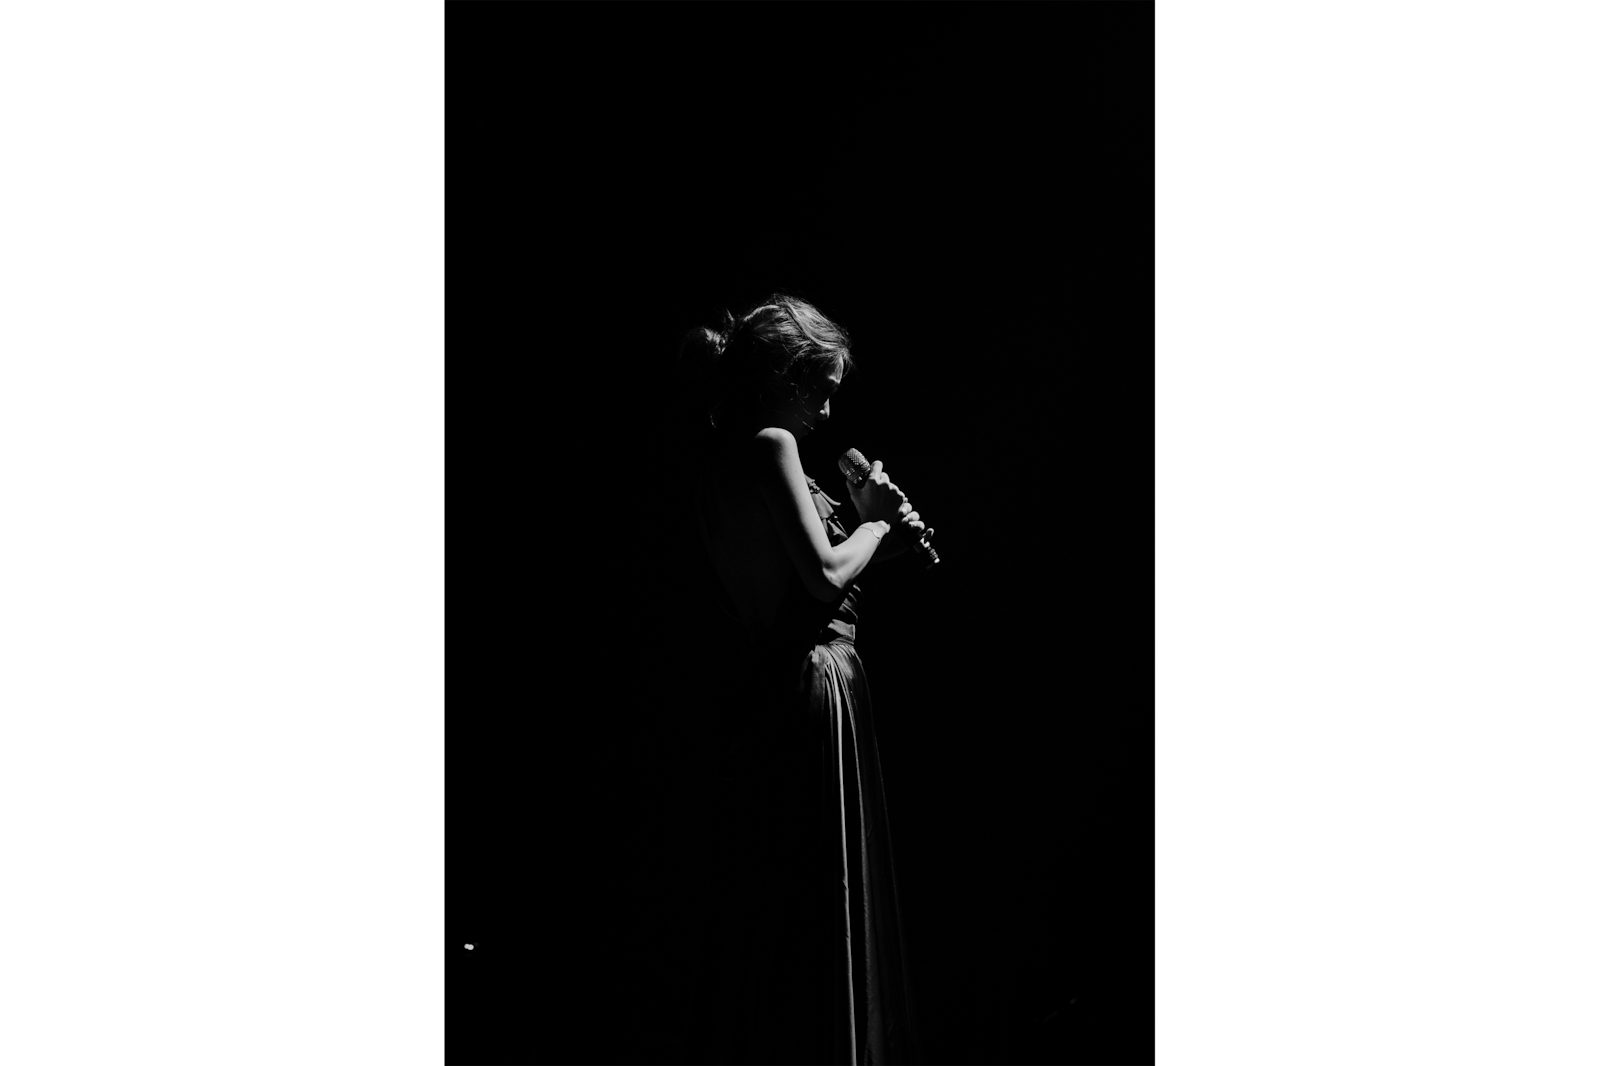 monotonous woman in the shadows holding microphone alpha 7RII